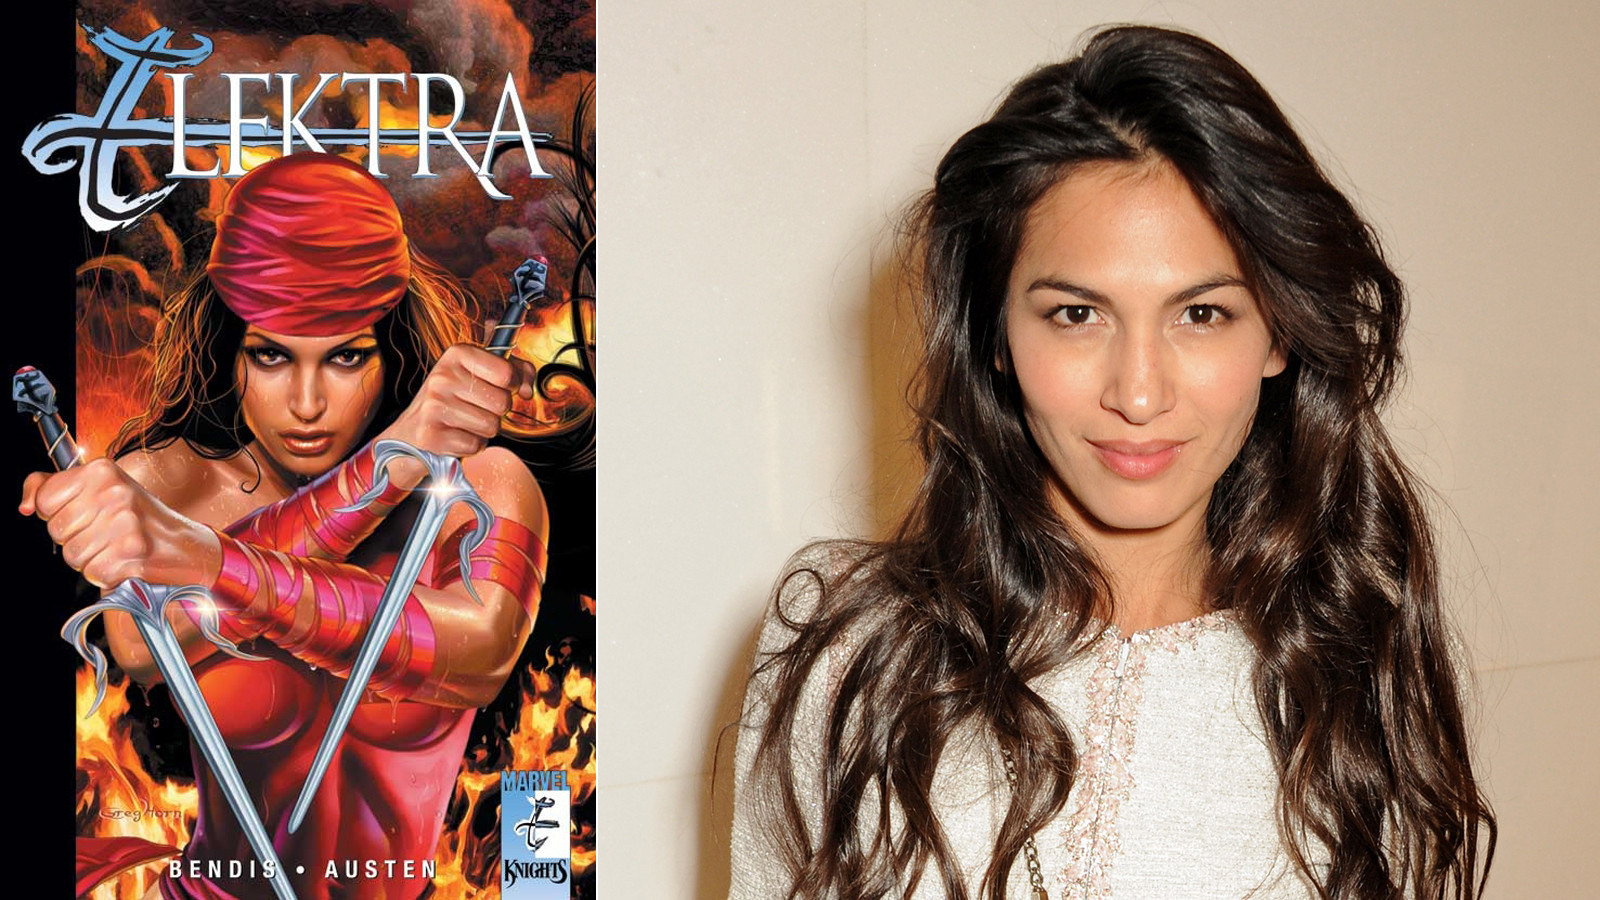 Wallpaper Girl With The Dragon Tattoo Elodie Yung Cast As Elektra In Netflix S Daredevil